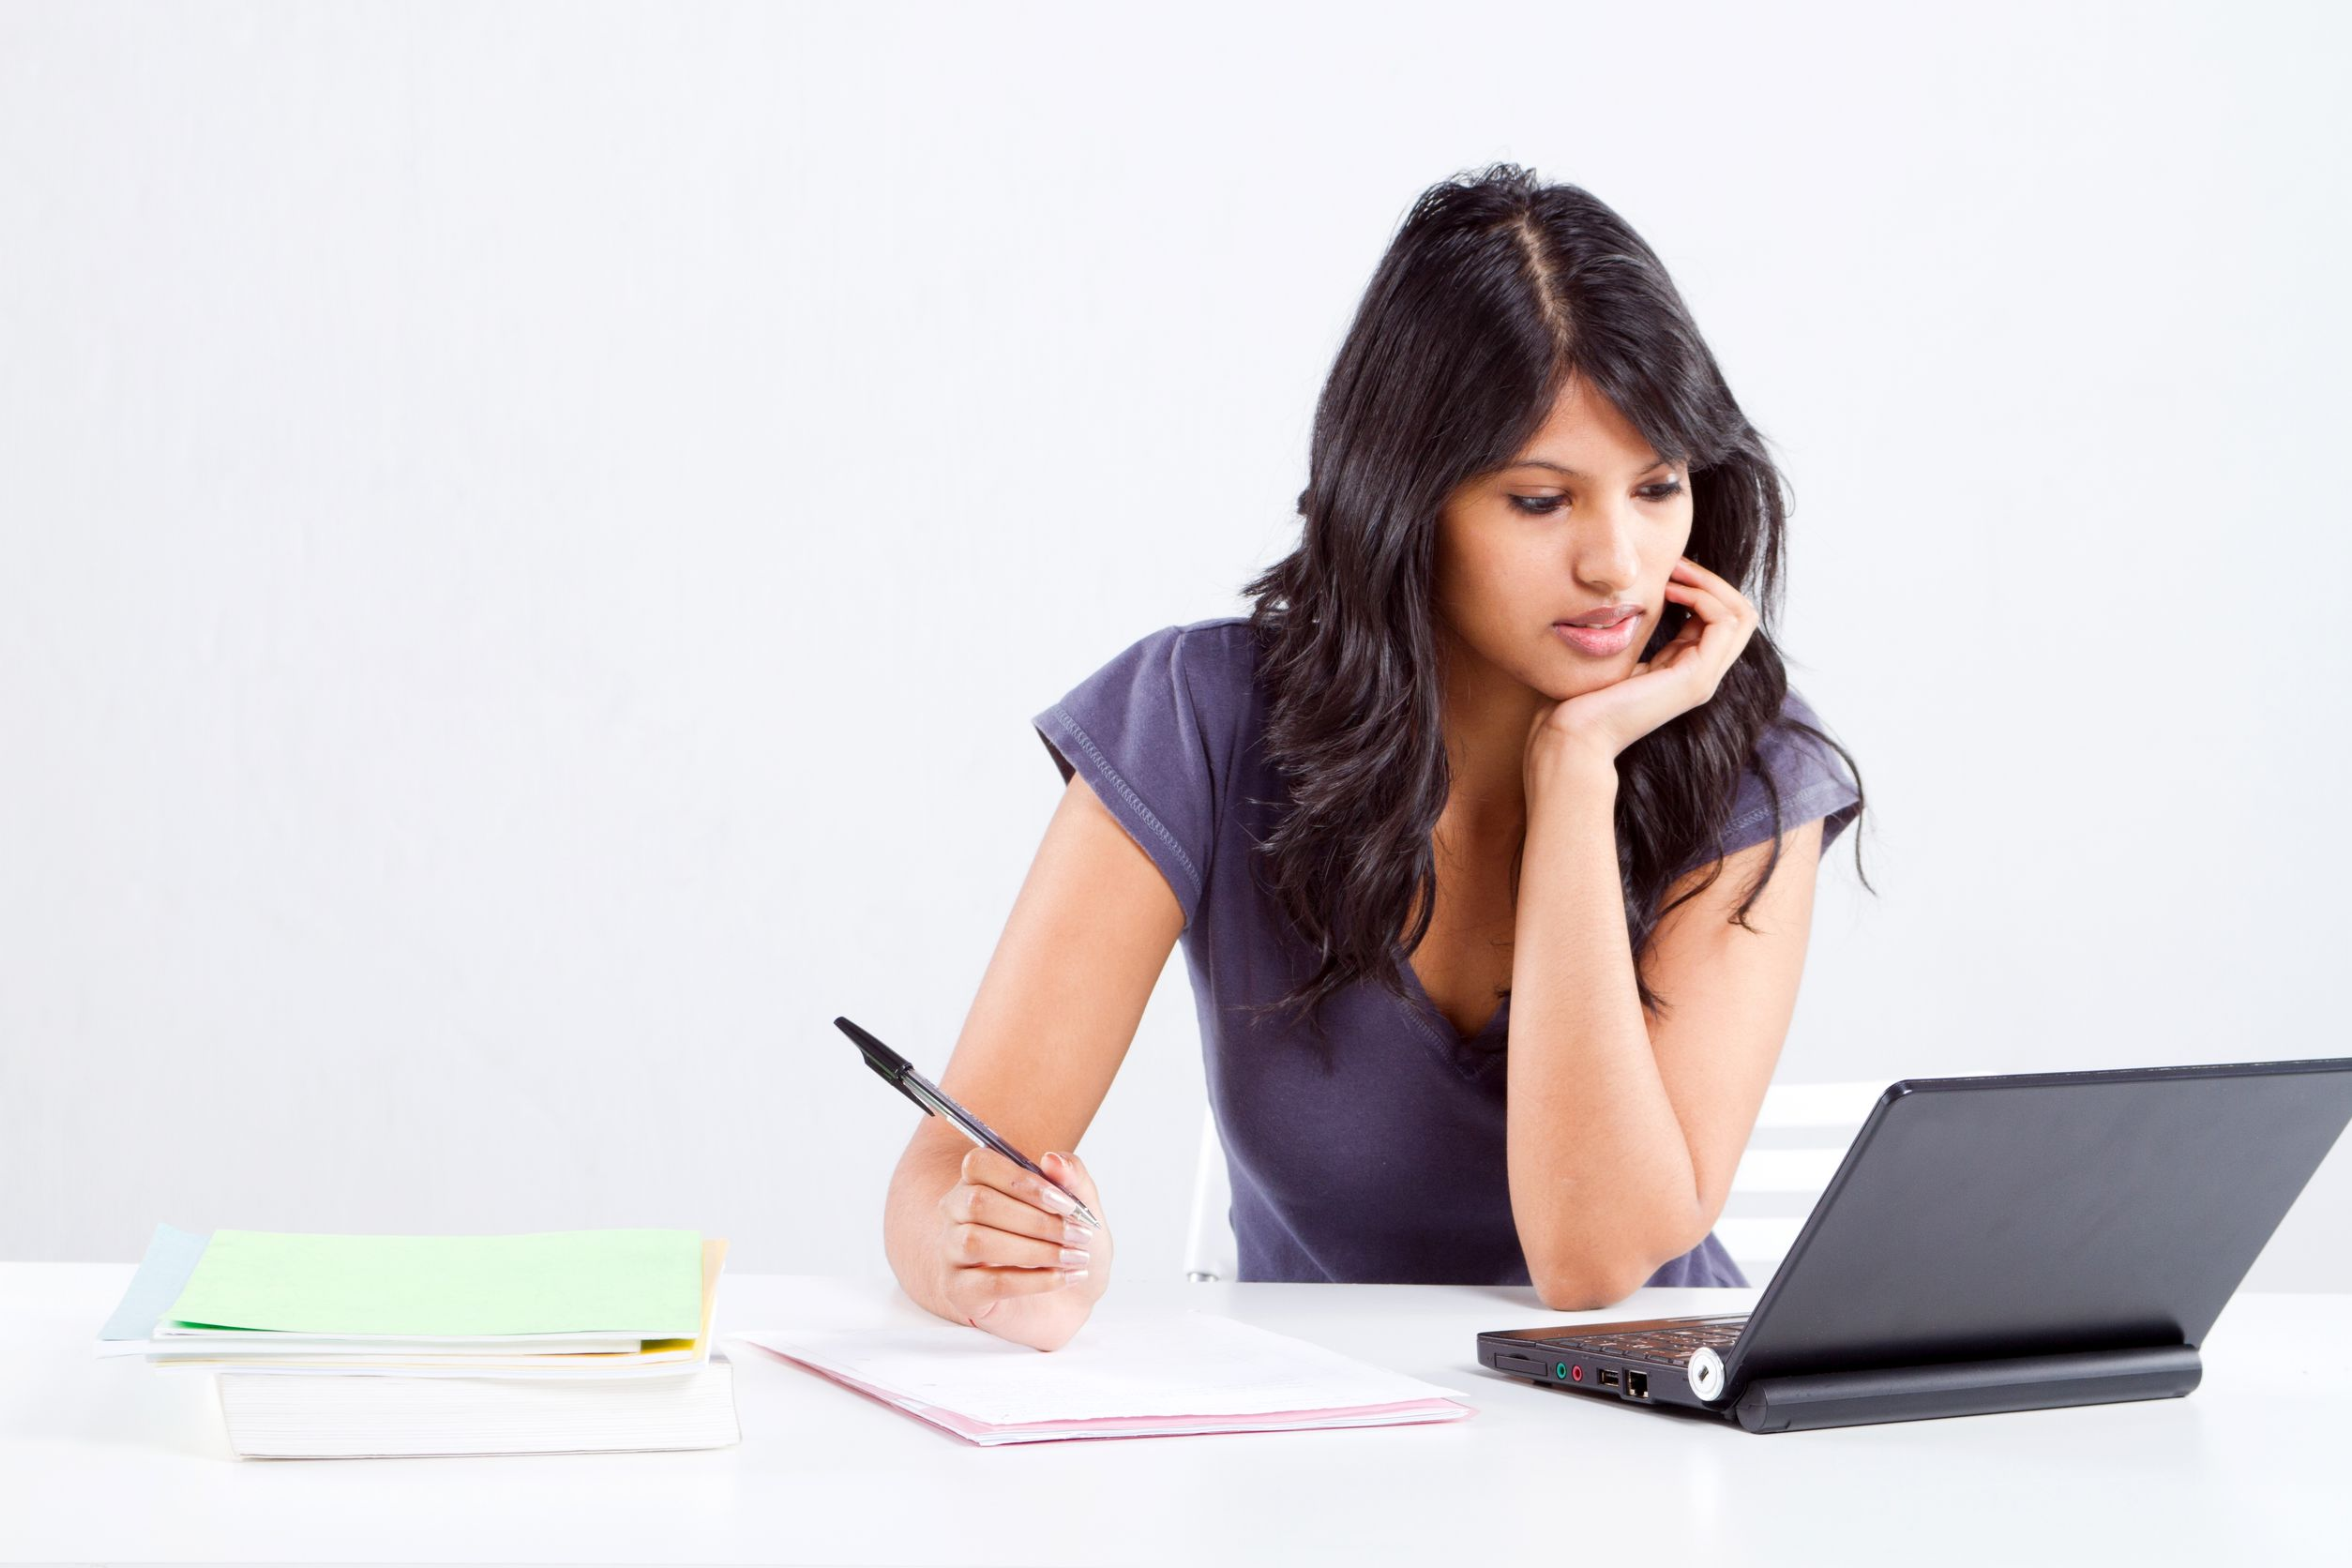 the benefits of having a job while studying How to work and study at the same time there are some definitive benefits of working while you're getting a degree among the most obvious, you'll be earning a paycheck.